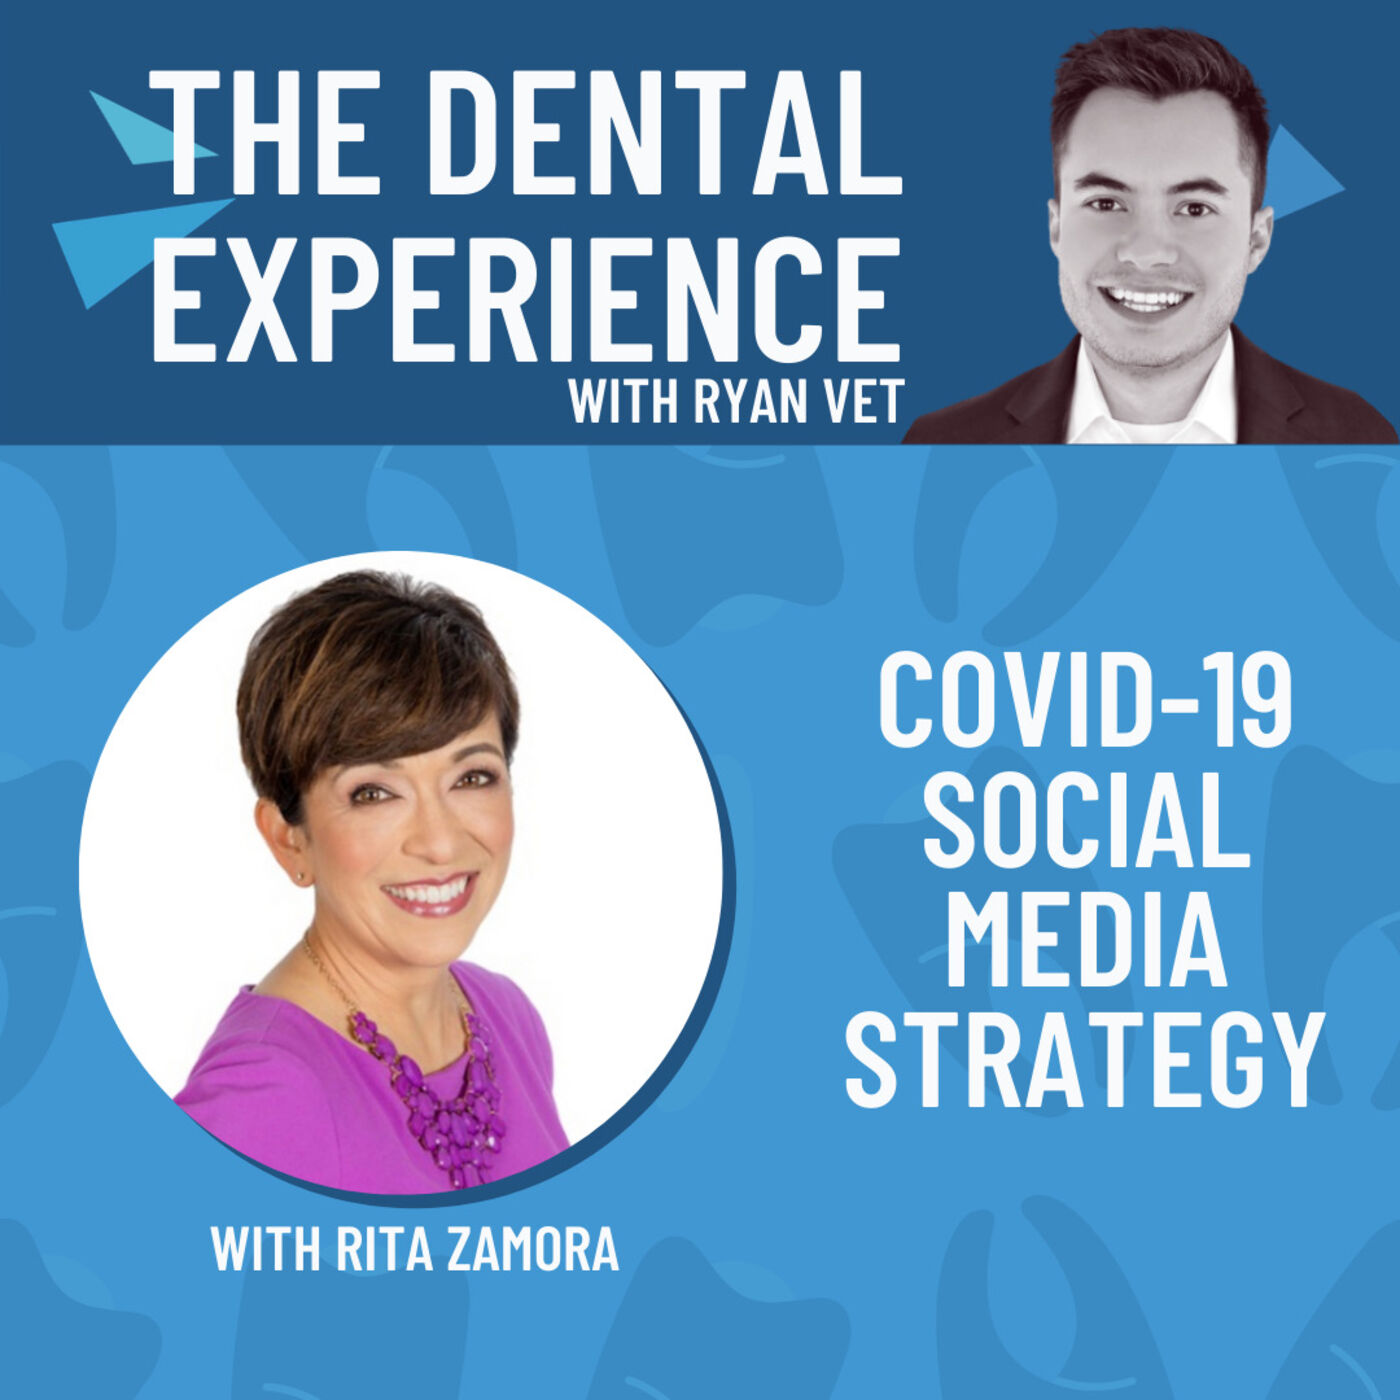 Episode 301: COVID-19 Social Media Strategy for Your Dental Practice, with Rita Zamora